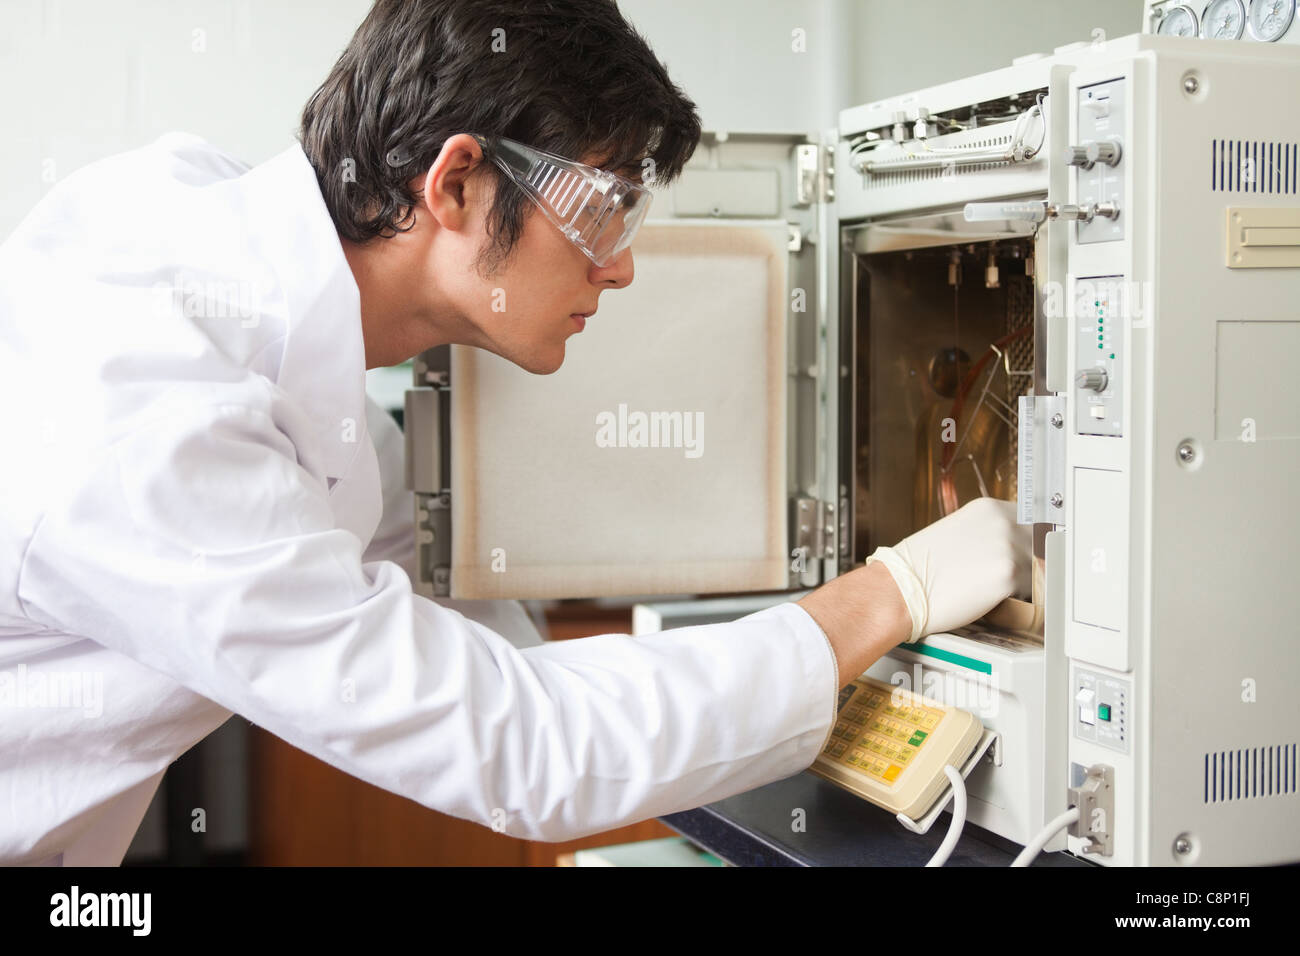 Male scientist using a laboratory chamber furnace - Stock Image